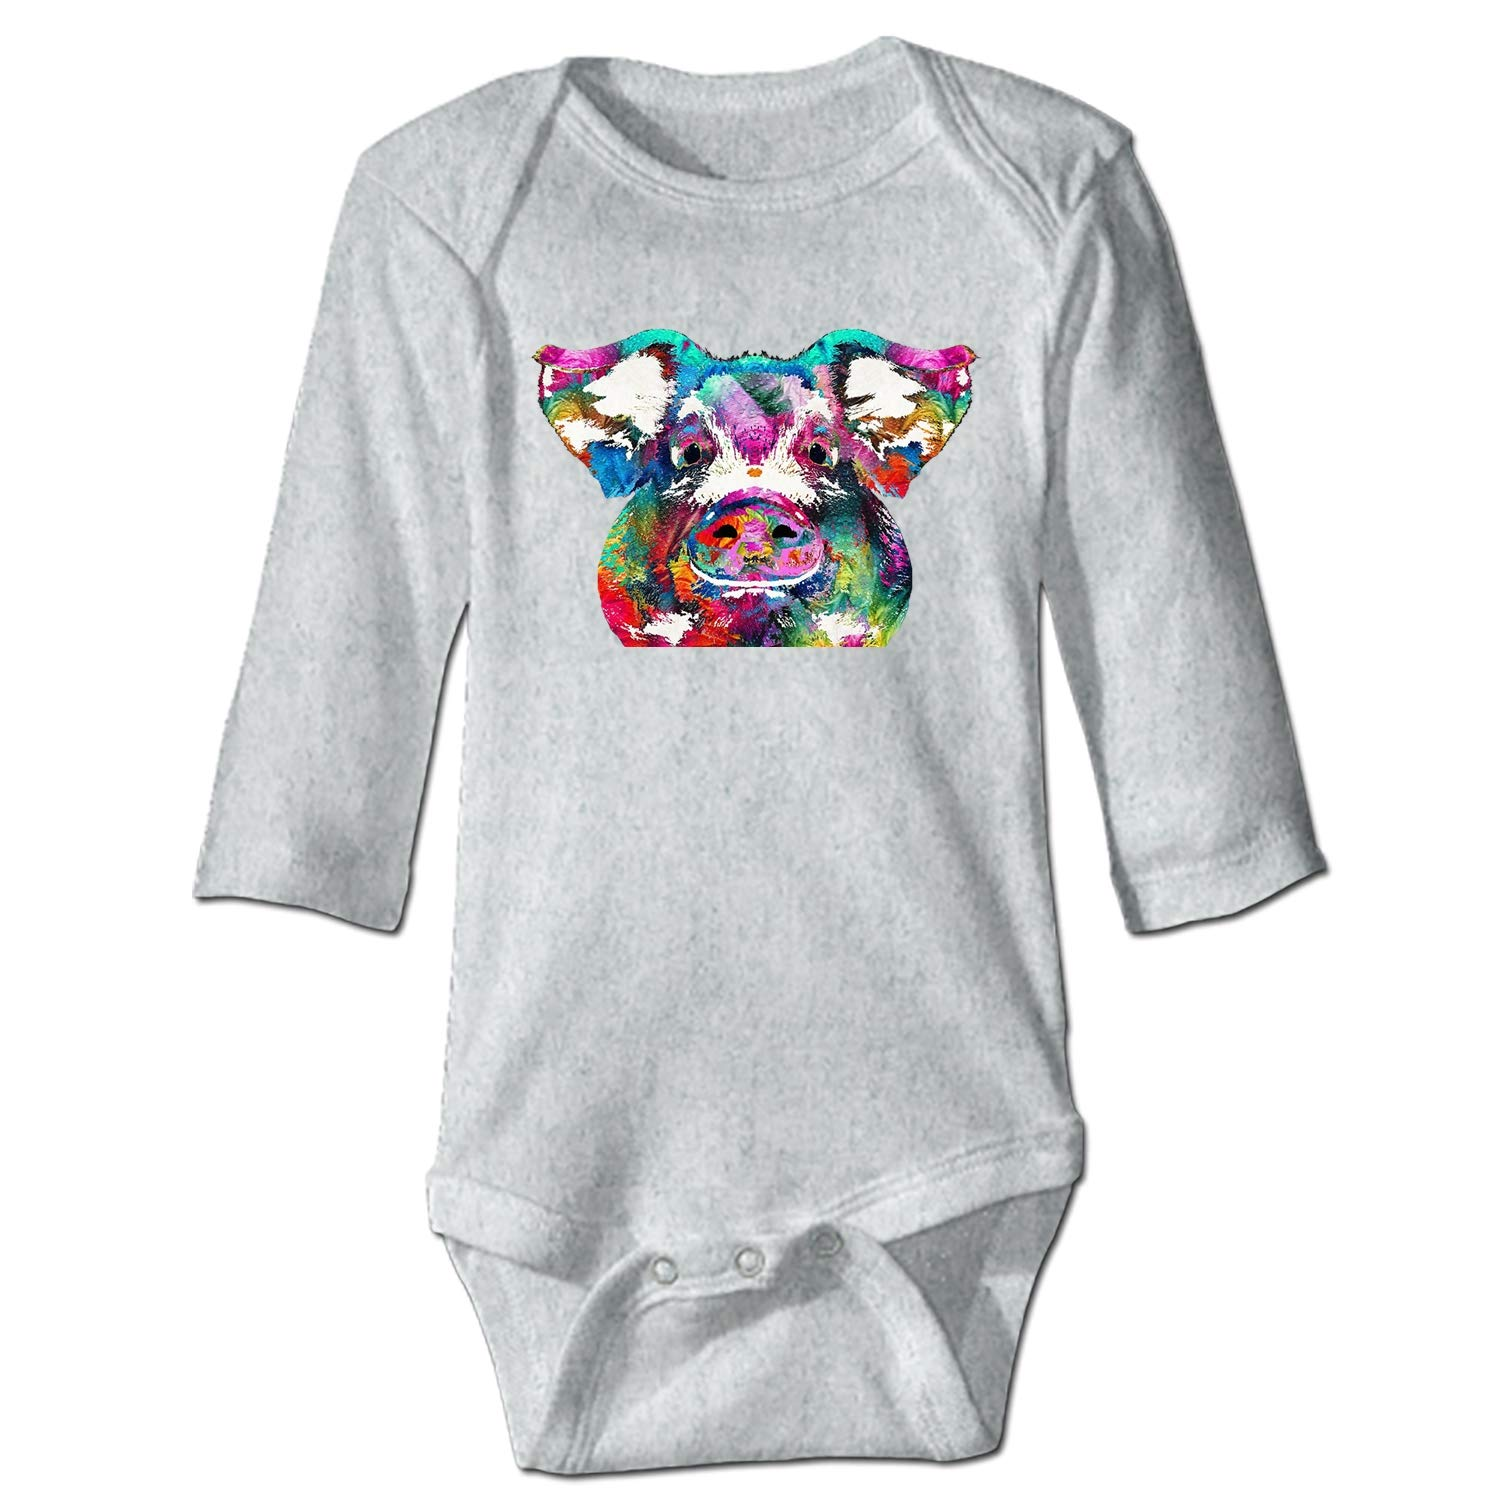 Chenqin-s Flying Deer Onesies Long Sleeve Home Outfit for Baby Boys Girls